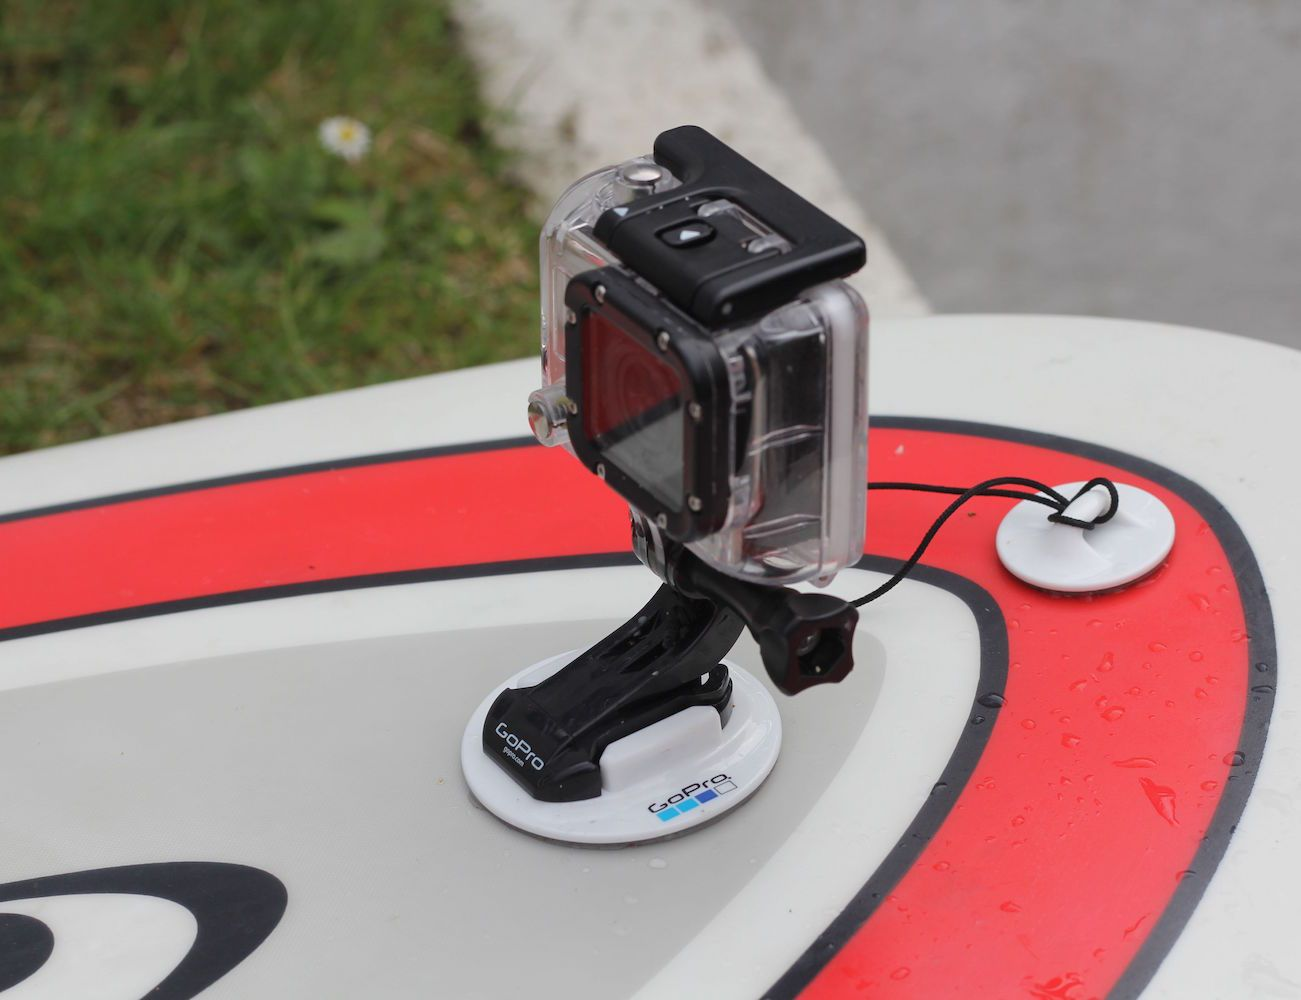 By using the #GoPro #Surfboard Mount, you can now make the most out of your water sports photoshoot.